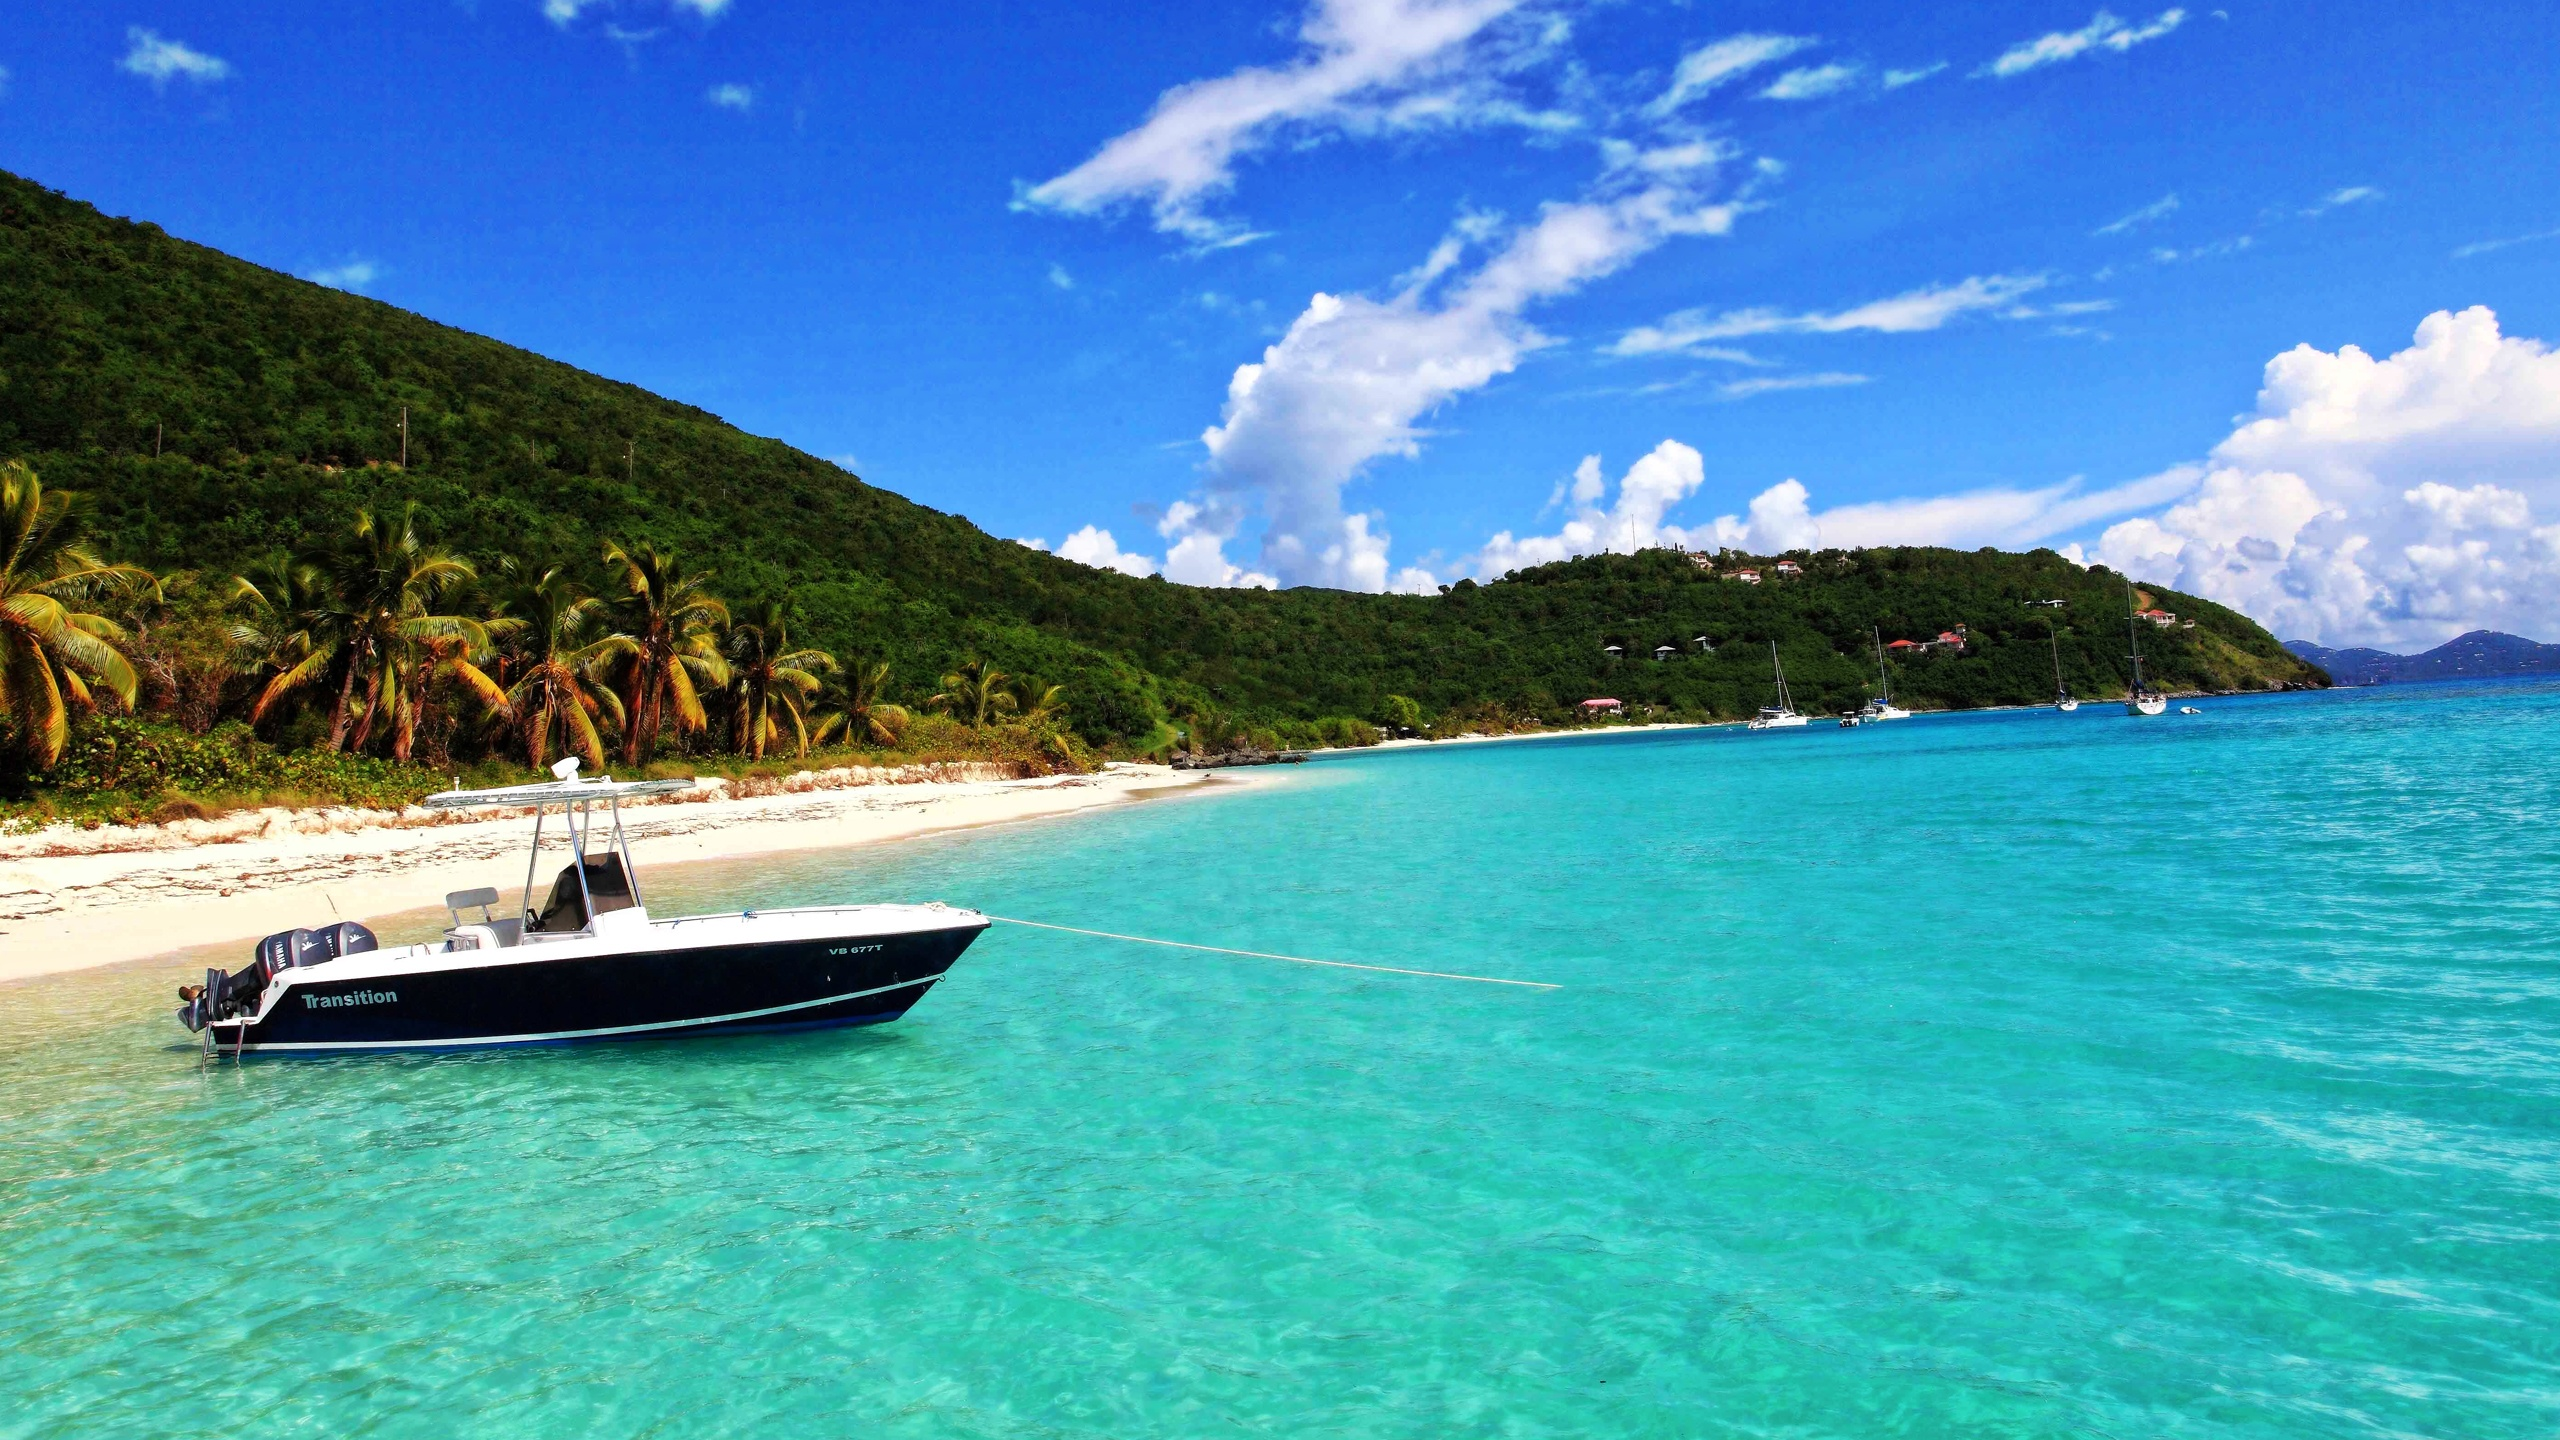 Download These 42 High Res Caribbean Wallpaper Backgrounds 2560x1440